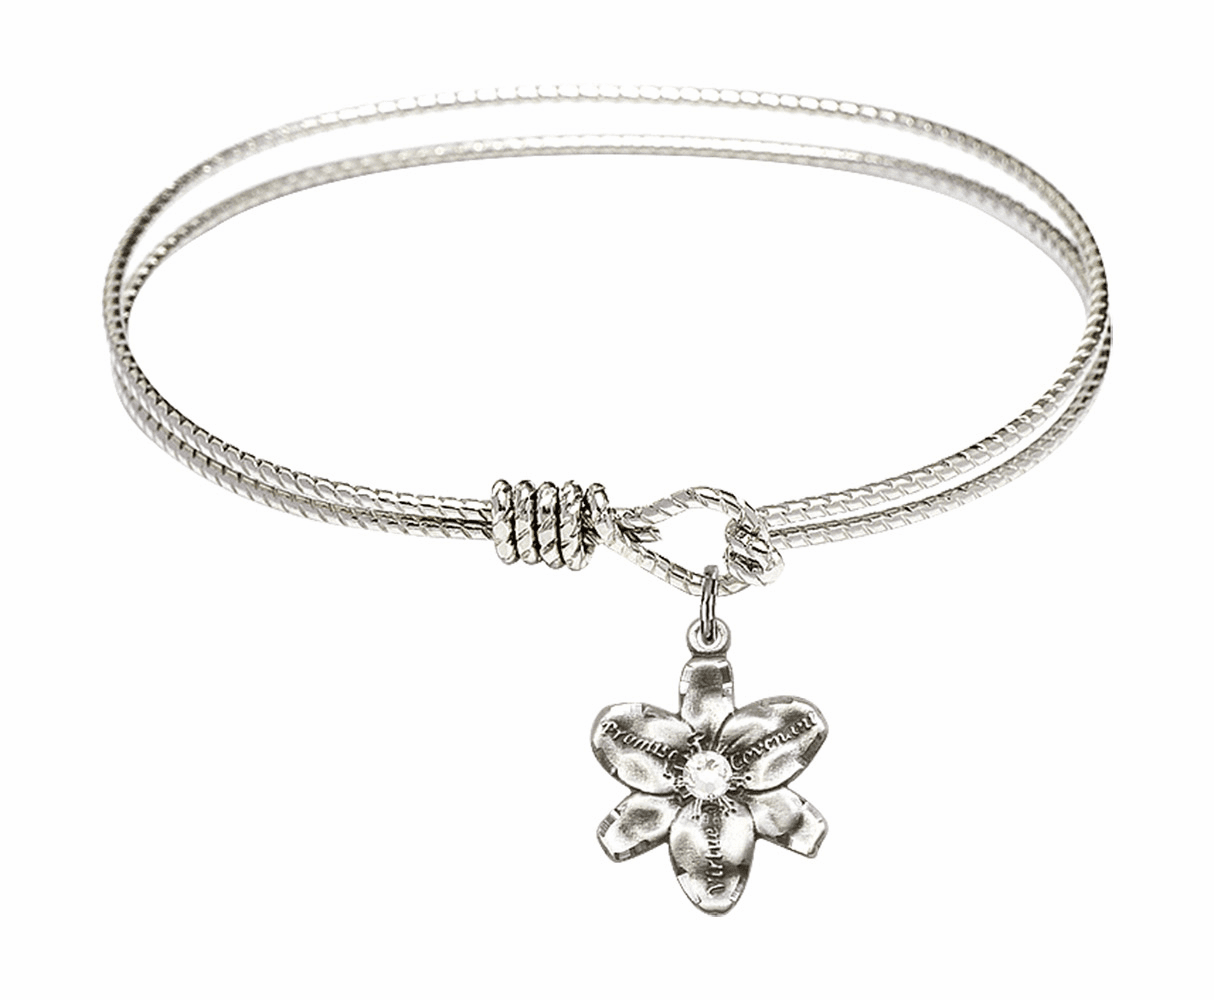 Textured Bangle Bracelet w/Crystal Flower Chastity Charm by Bliss Mfg